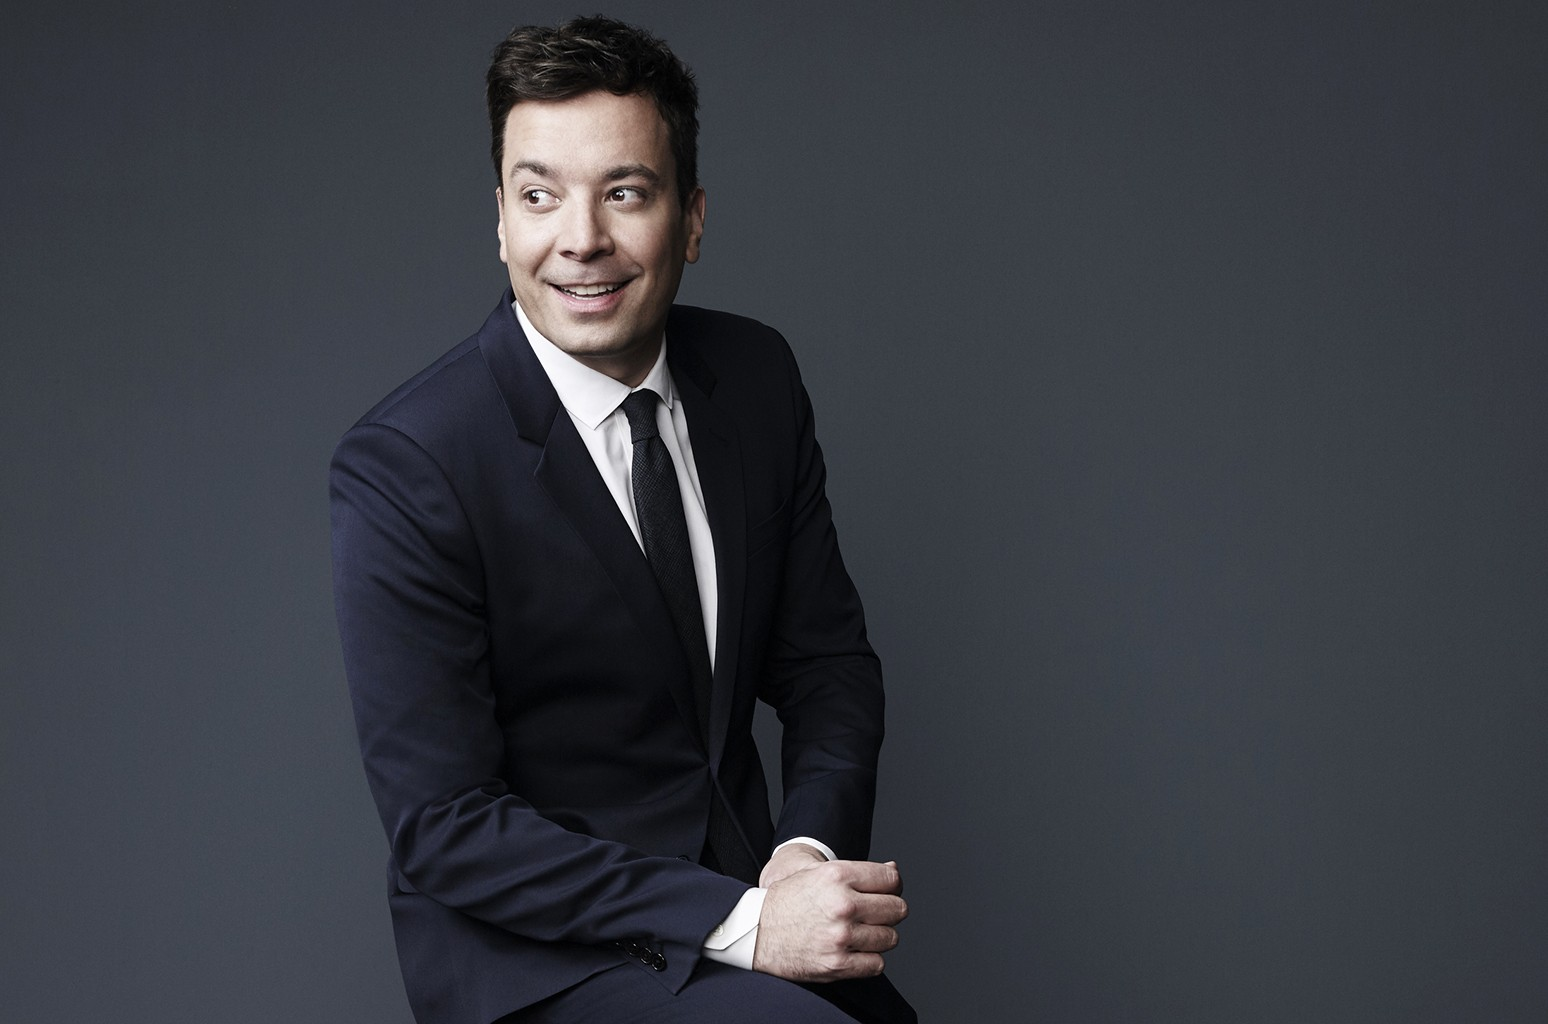 Jimmy Fallon photographed in 2016.